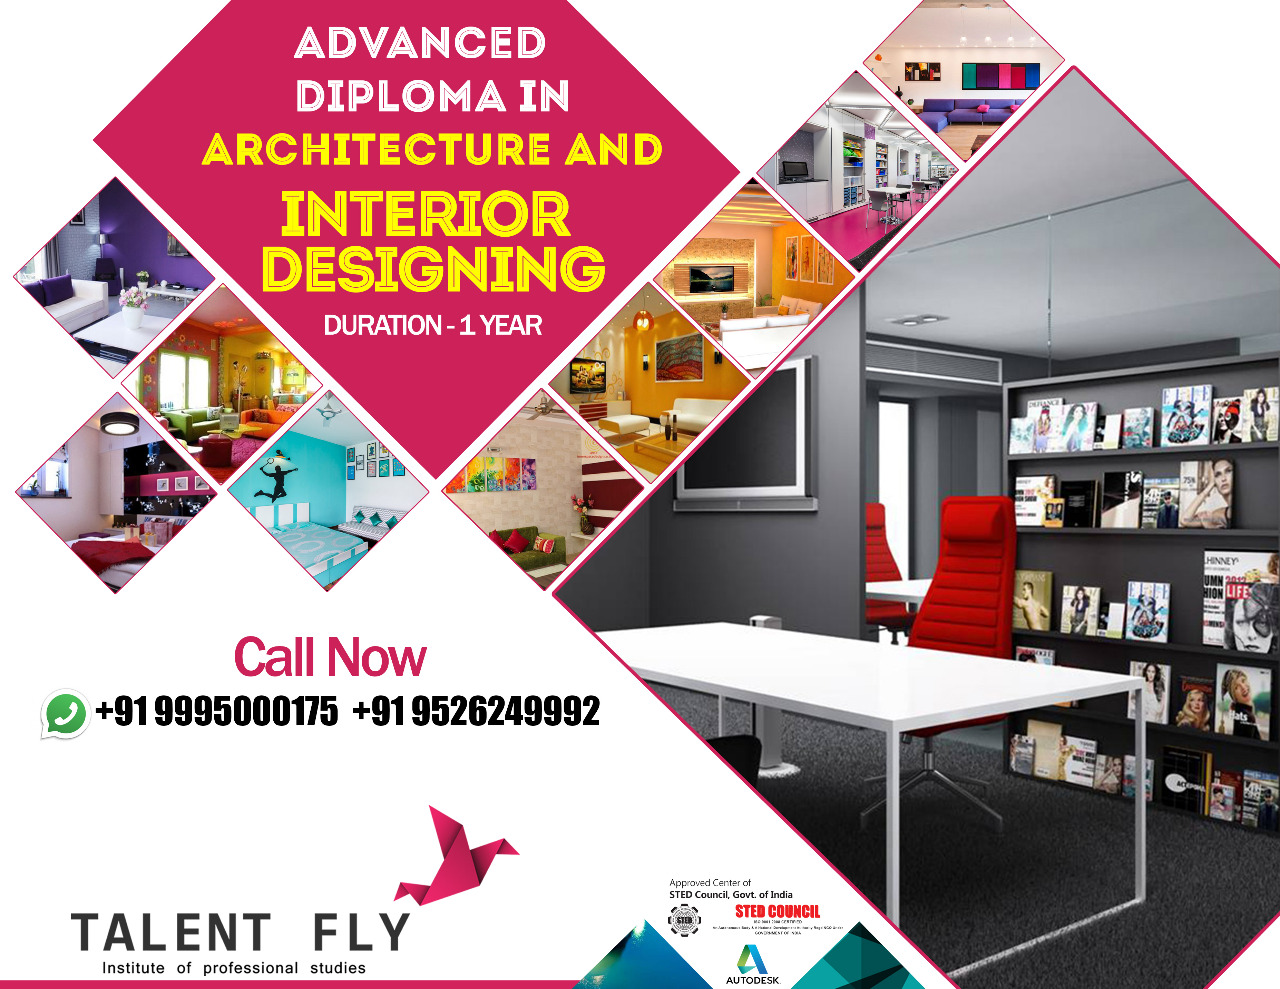 interior design institute in kochi, interior design institute in kochi, Top 10 Interior Designing Courses in Cochin Top 10 Interior Designing Courses in Cochin, Interior Designing Colleges In Ernakulam Interior Designing Colleges In Ernakulam, Diploma in Interior Design Colleges in Ernakulam, Diploma in Interior Design Colleges in Ernakulam, Top 50 Interior Designers in Kochi ,Top 50 Interior Designers in Kochi, Interior Design Courses and Colleges in Kochi Interior Design Courses and Colleges in Kochi, best institute providing professional interior designing courses, best institute providing professional interior designing courses